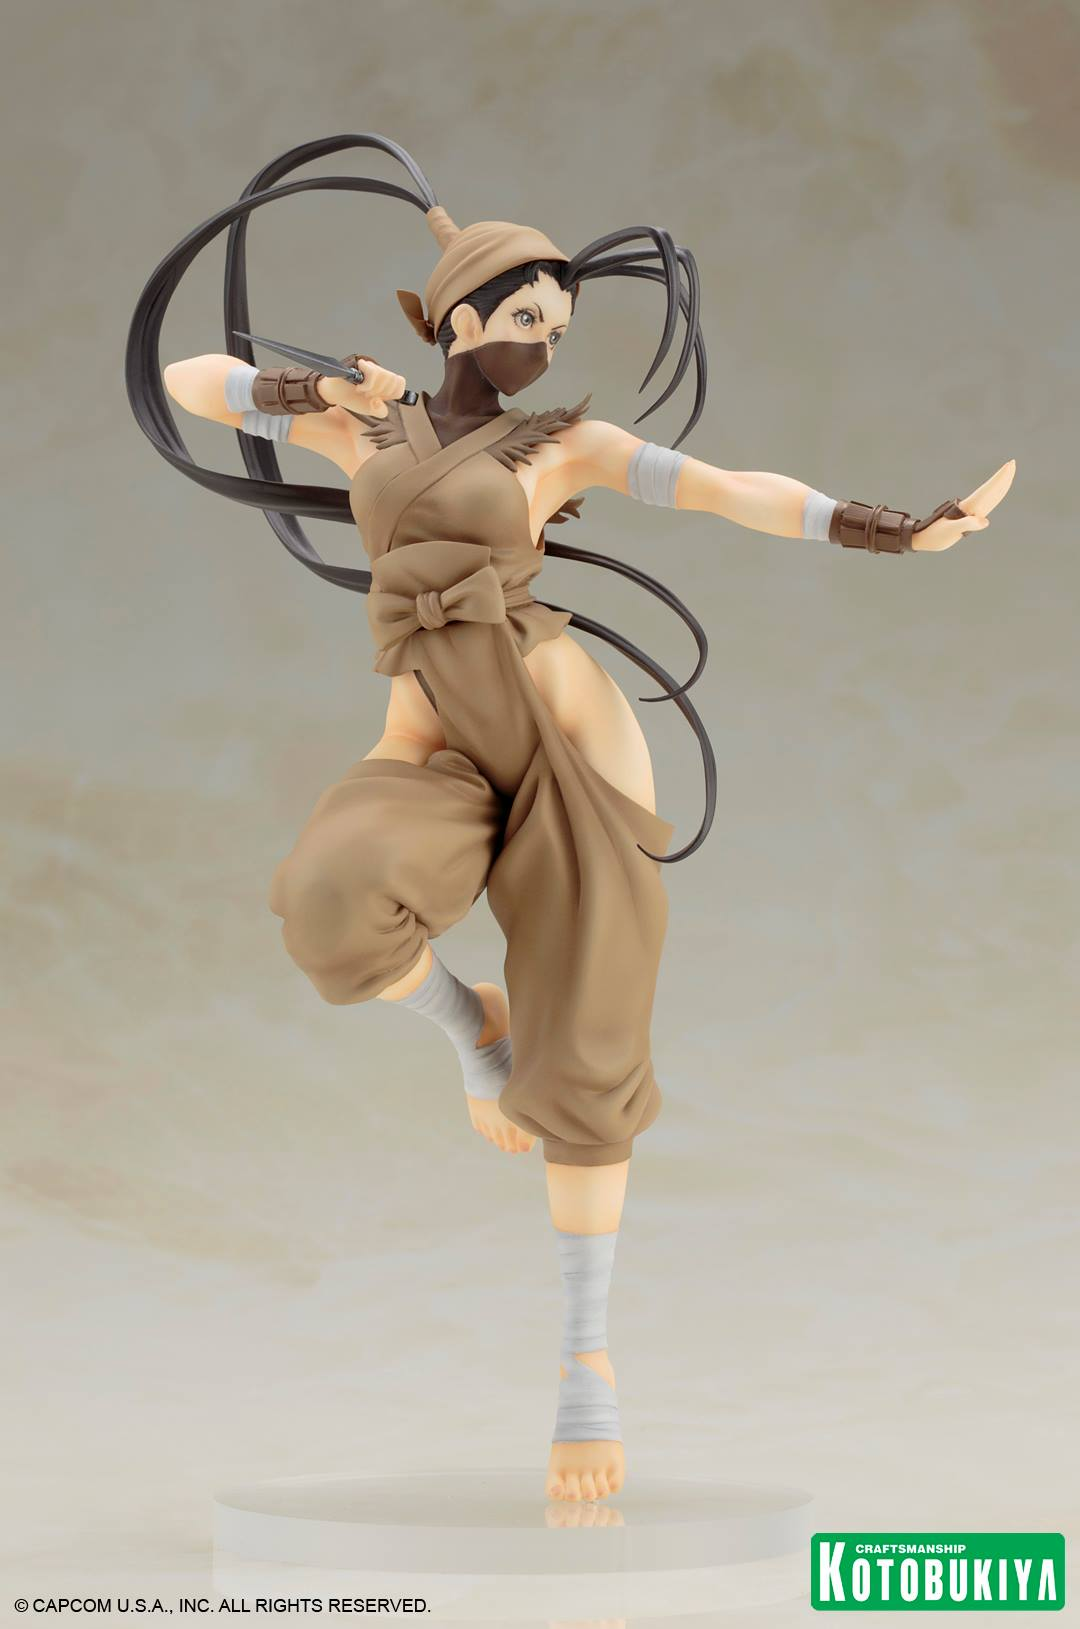 ibuki-street-fighter-bishoujo-statue-exclusive-kotobukiya-2